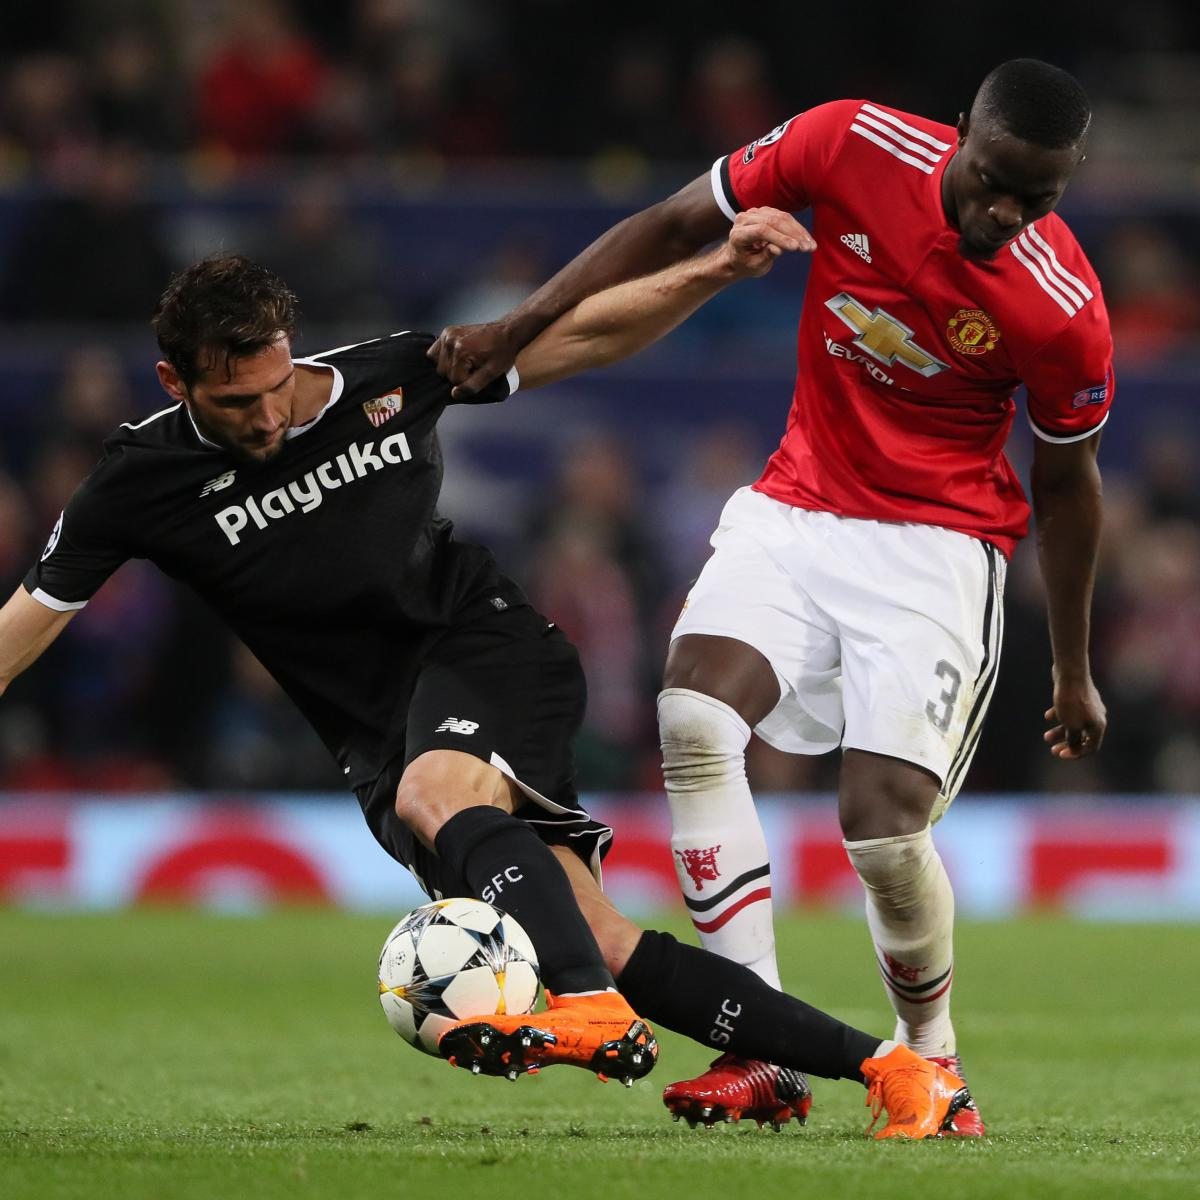 Report: Arsenal Eyeing Eric Bailly and Gary Cahill After Rob Holding Injury #AFC  https://fanly.link/e7e13c10c8